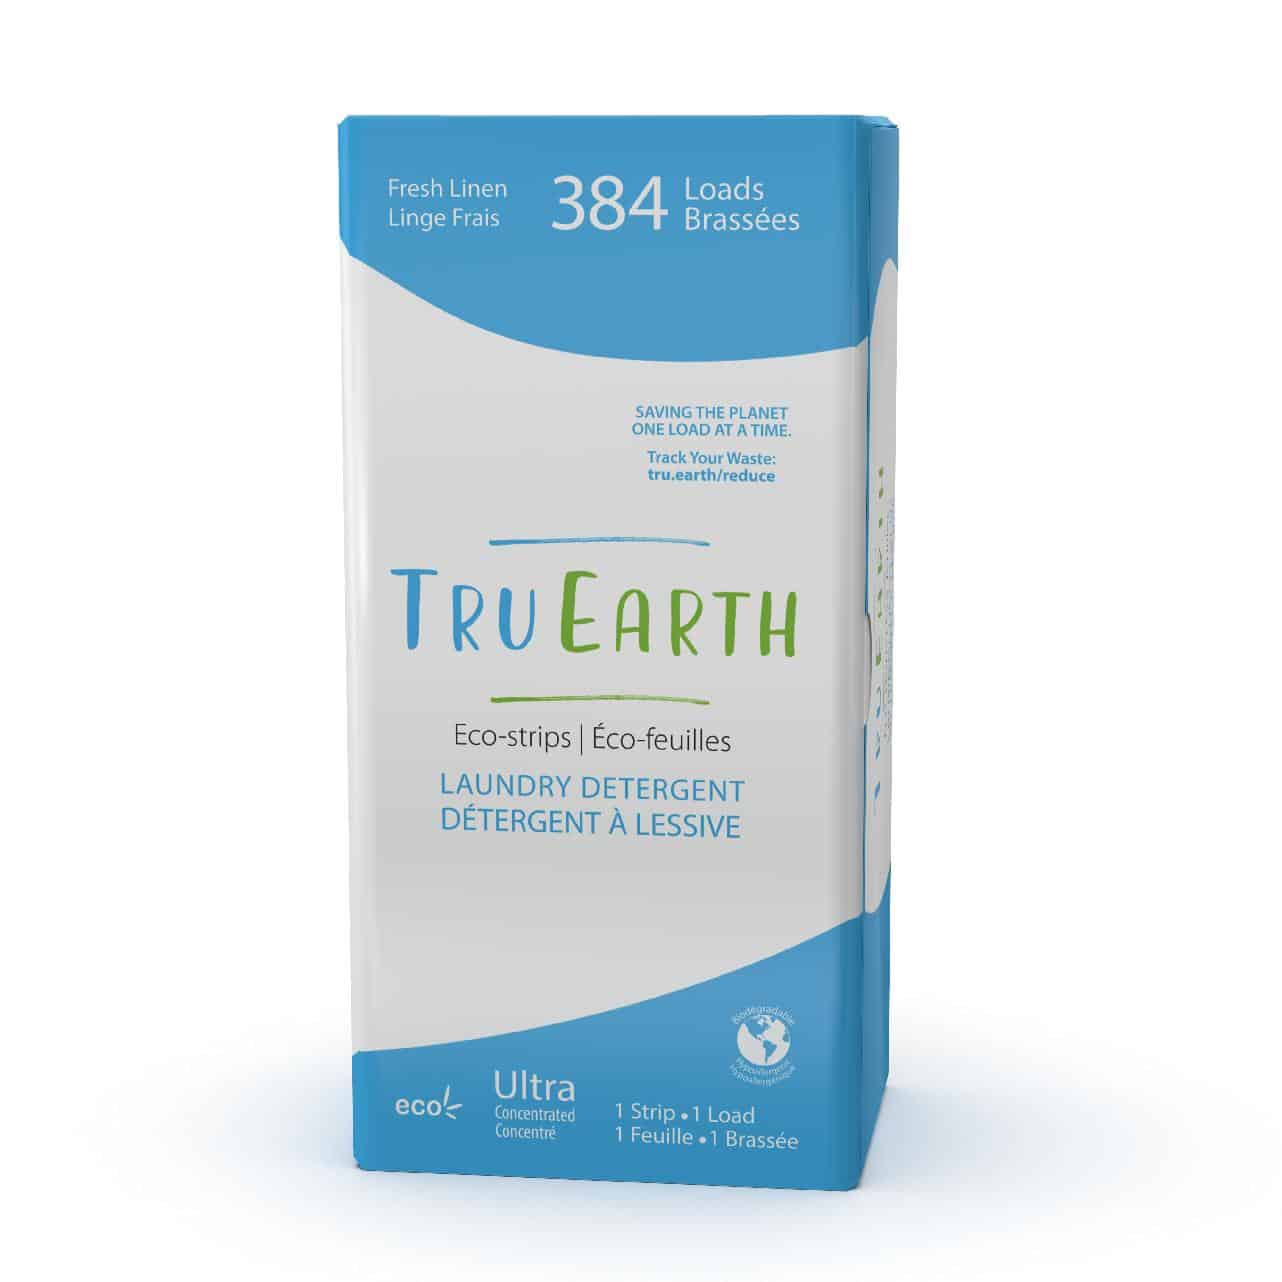 Tru Earth - Tru Earth Eco-strips Laundry Detergent (Fresh Linen) – 384 Loads | NOW: $149.00